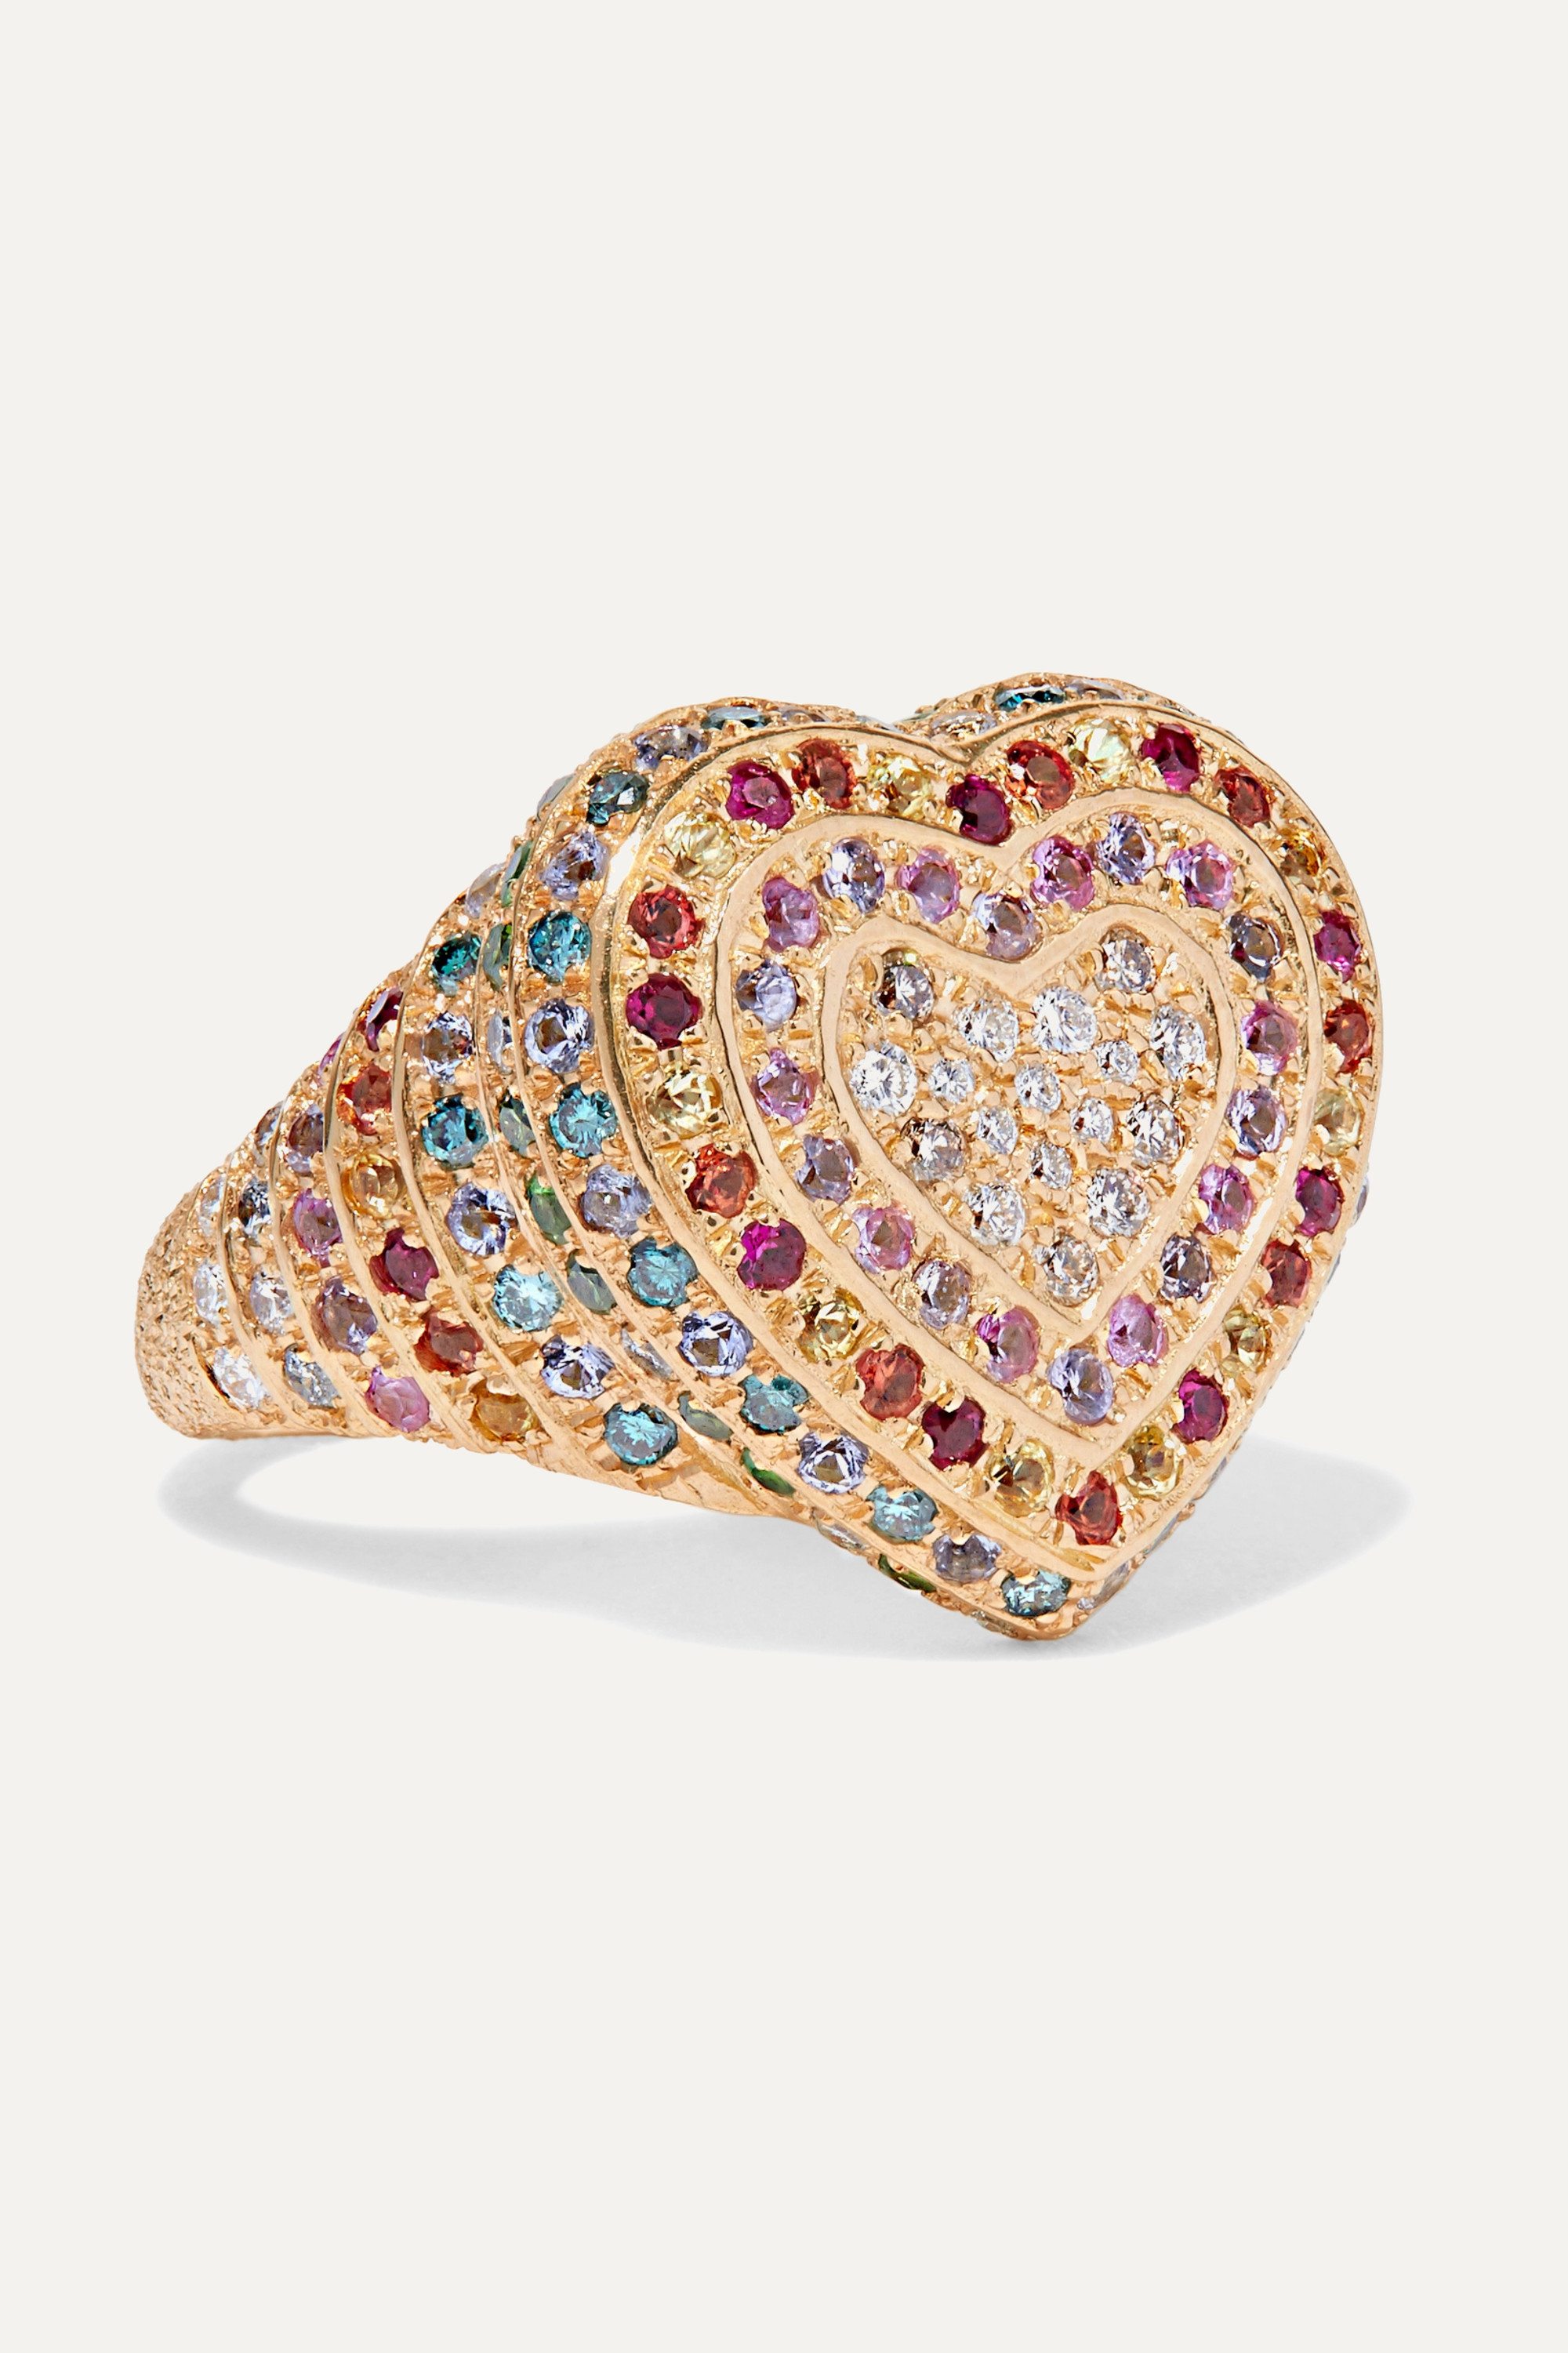 Carolina Bucci Heart 18-karat gold multi-stone ring